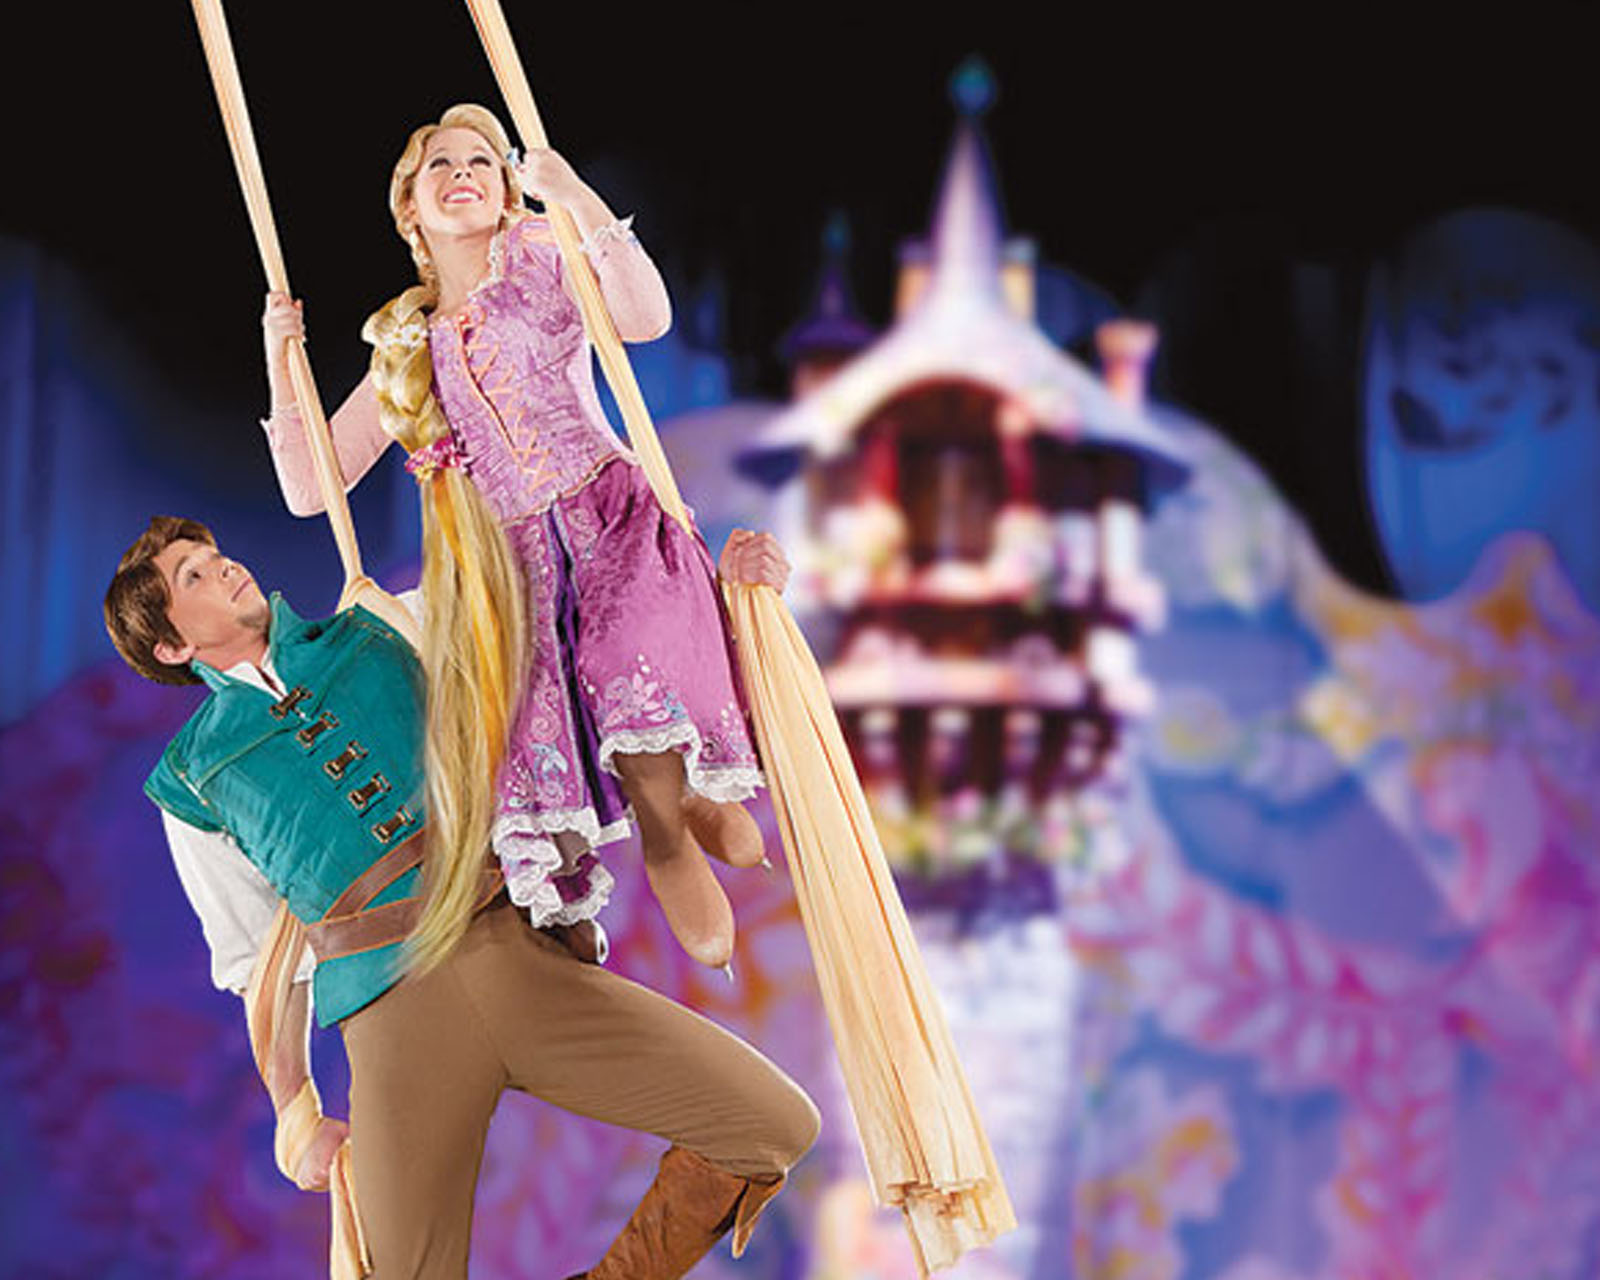 Rapunzel & Flynn hair silk fly over the ice with the Rapunzel's Tower in the background- Tower is attached to the side of the giant rotating set with two brightly painted curvilinear screens closed around the tower.